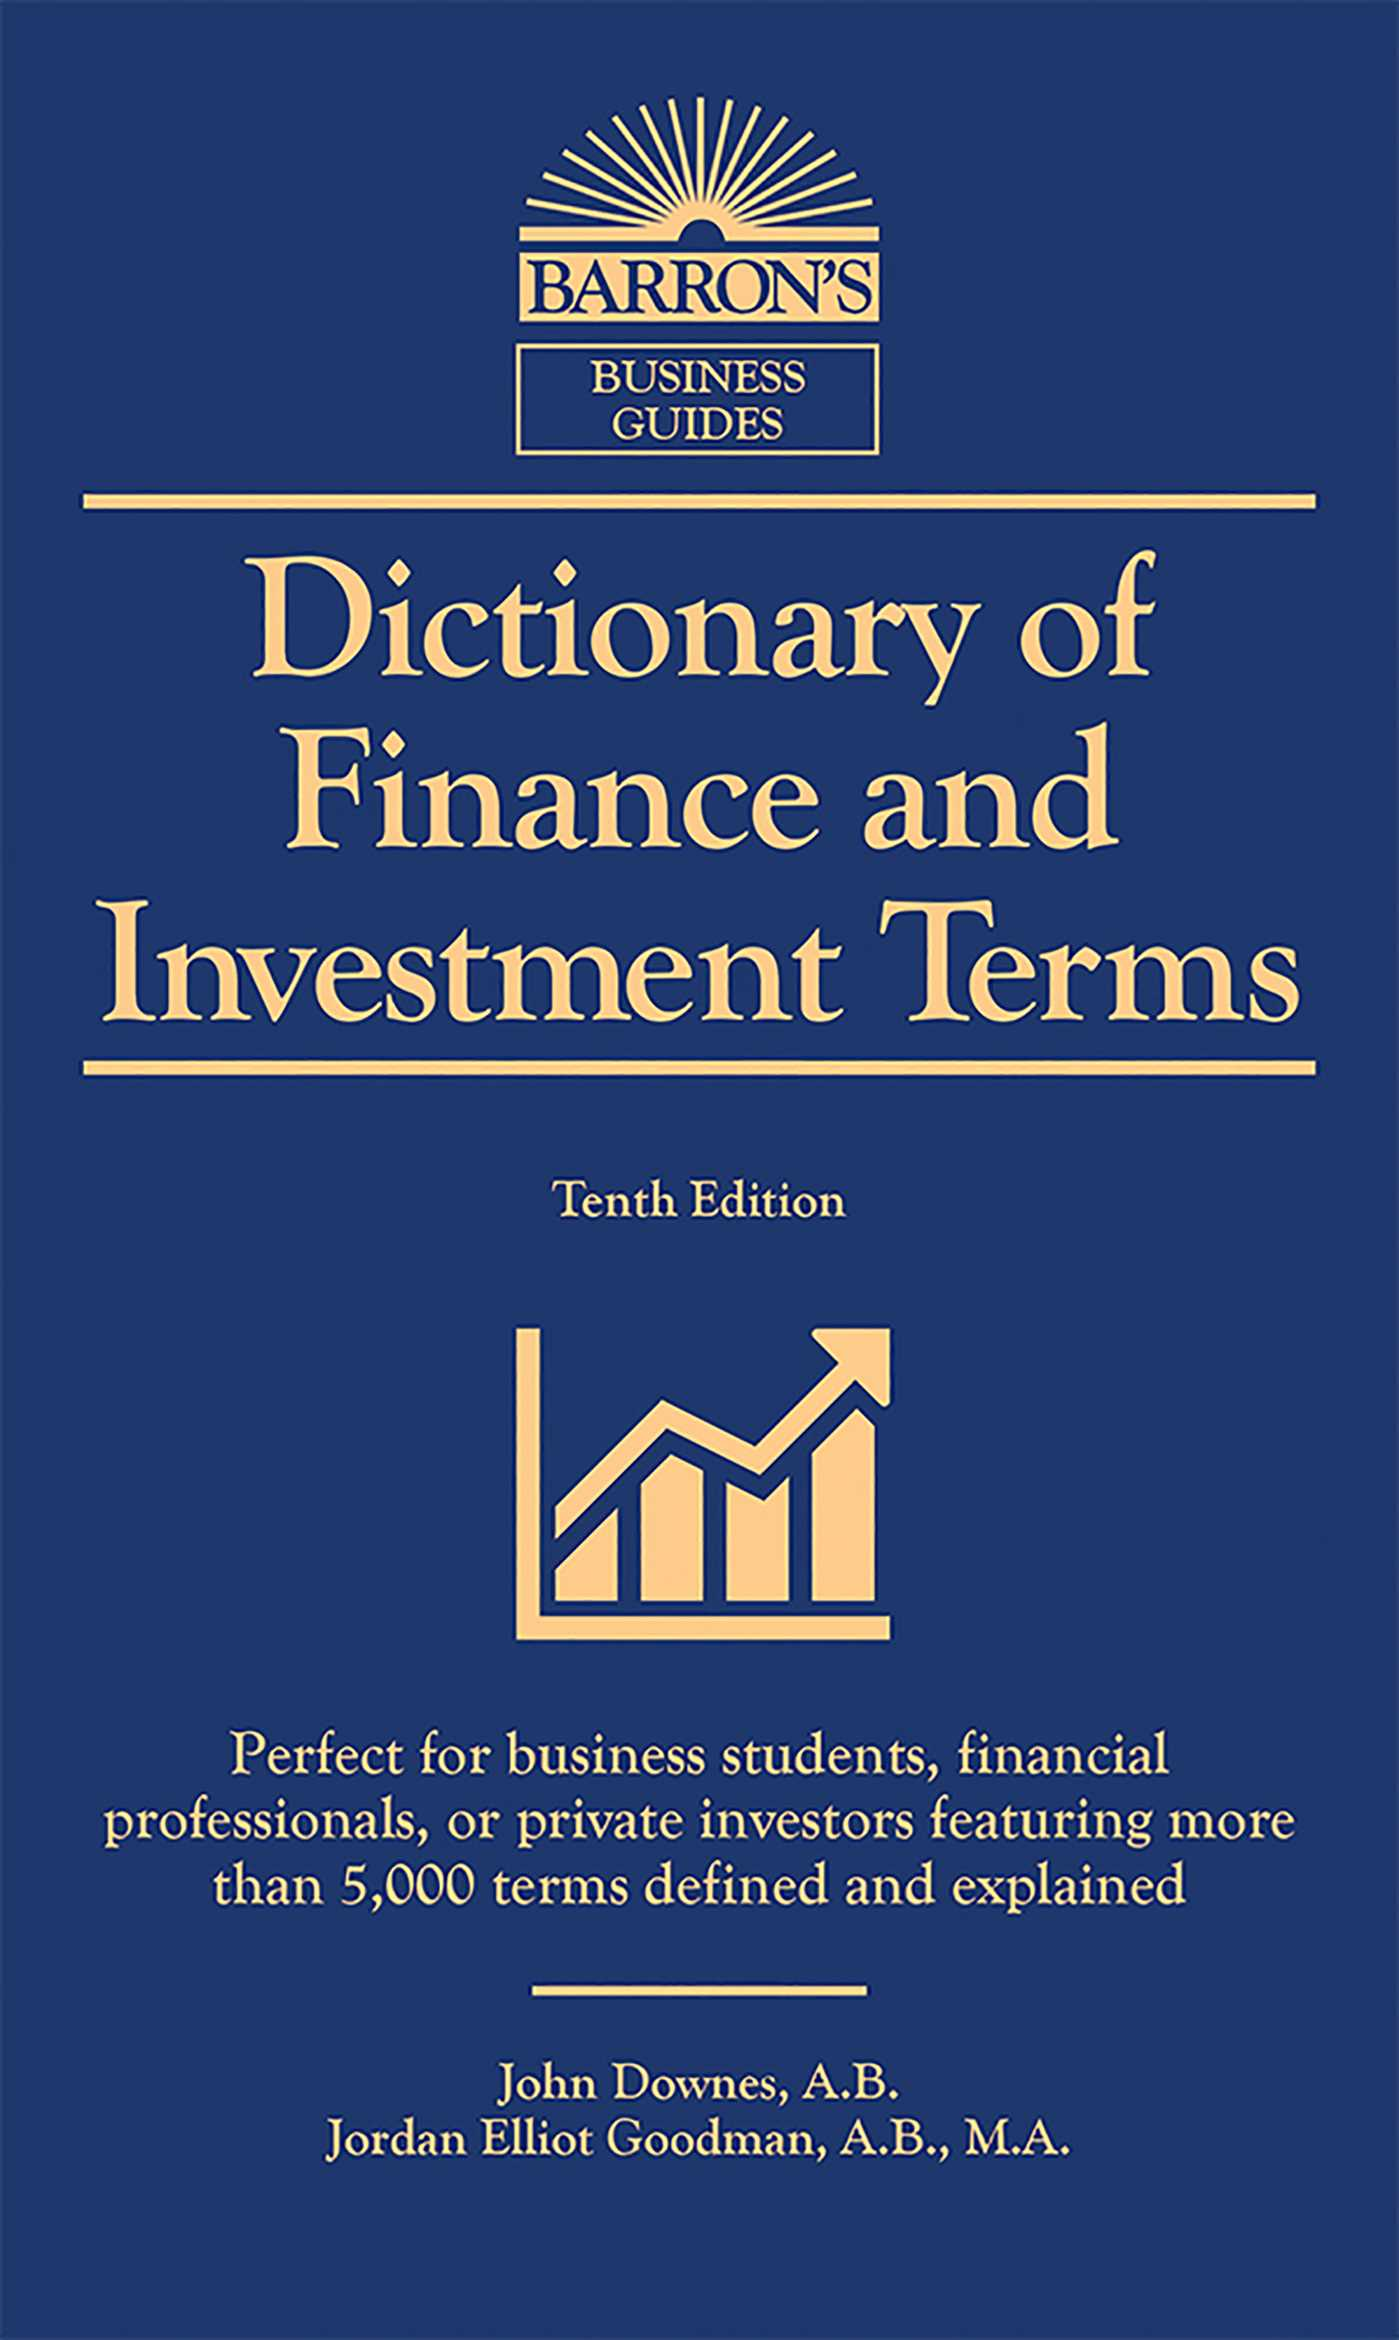 Book Cover Image (jpg): Dictionary of Finance and Investment Terms. Tenth  Edition Trade Paperback 9781438010441